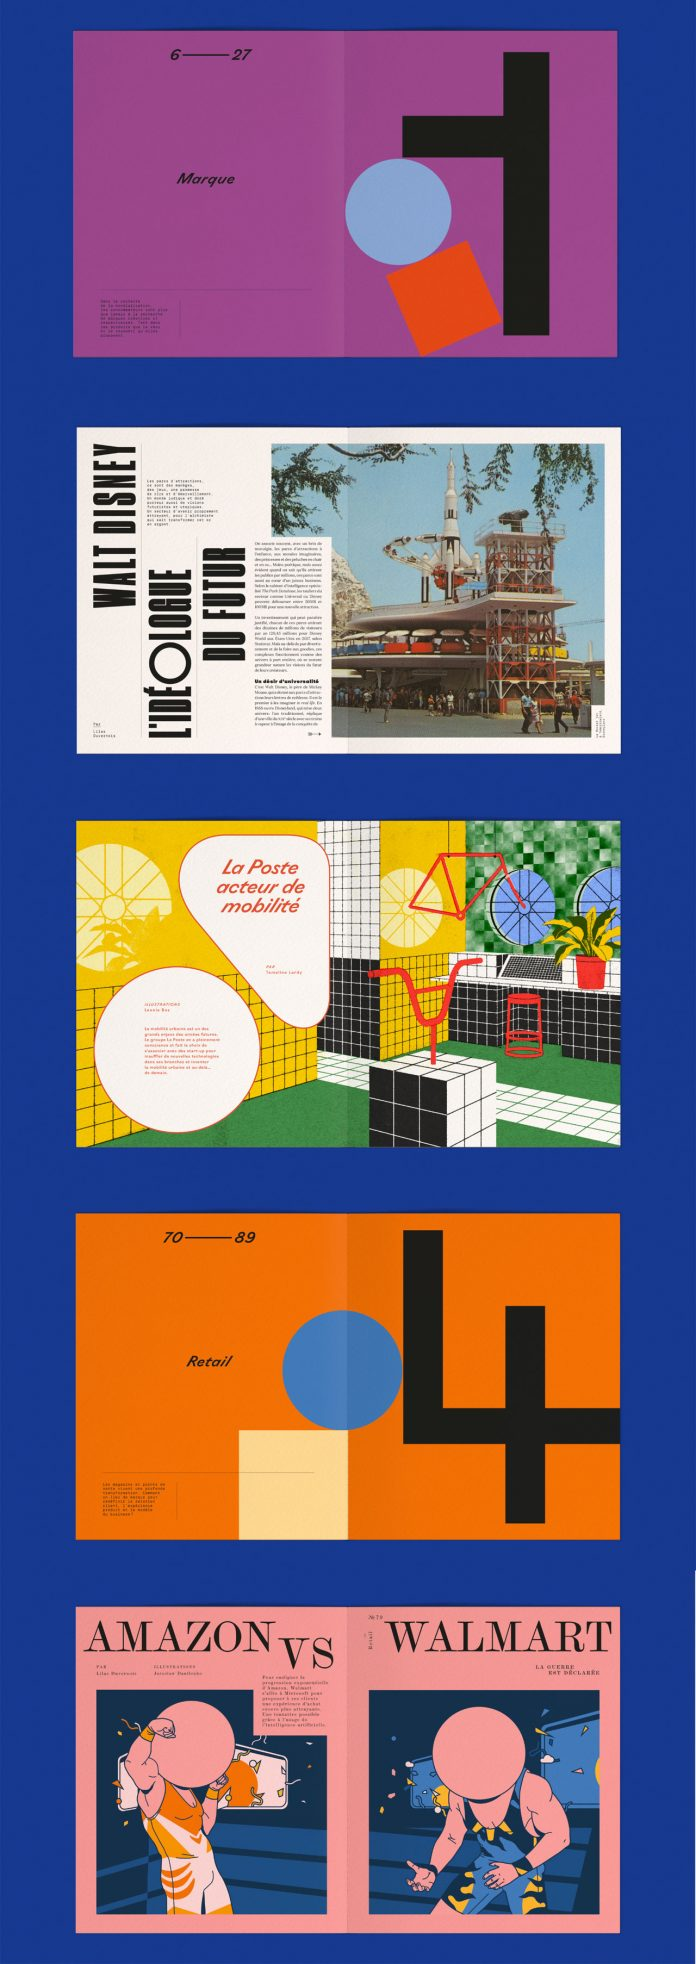 Yellow Vision vol. 3—graphic design, illustration, and editorial design by Violaine & Jeremy.